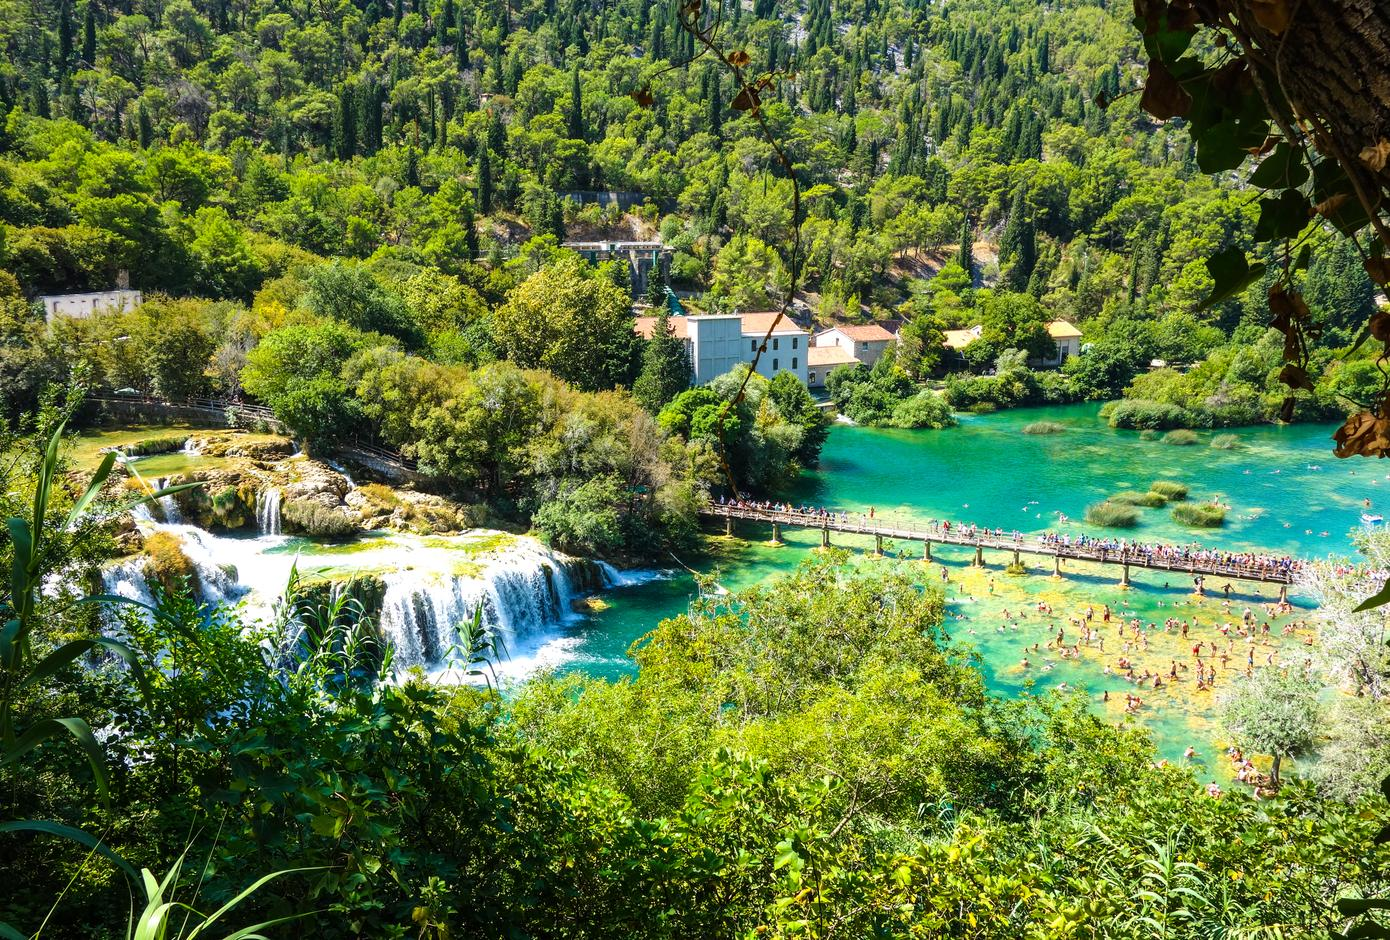 The Krka National Park, in Croatia